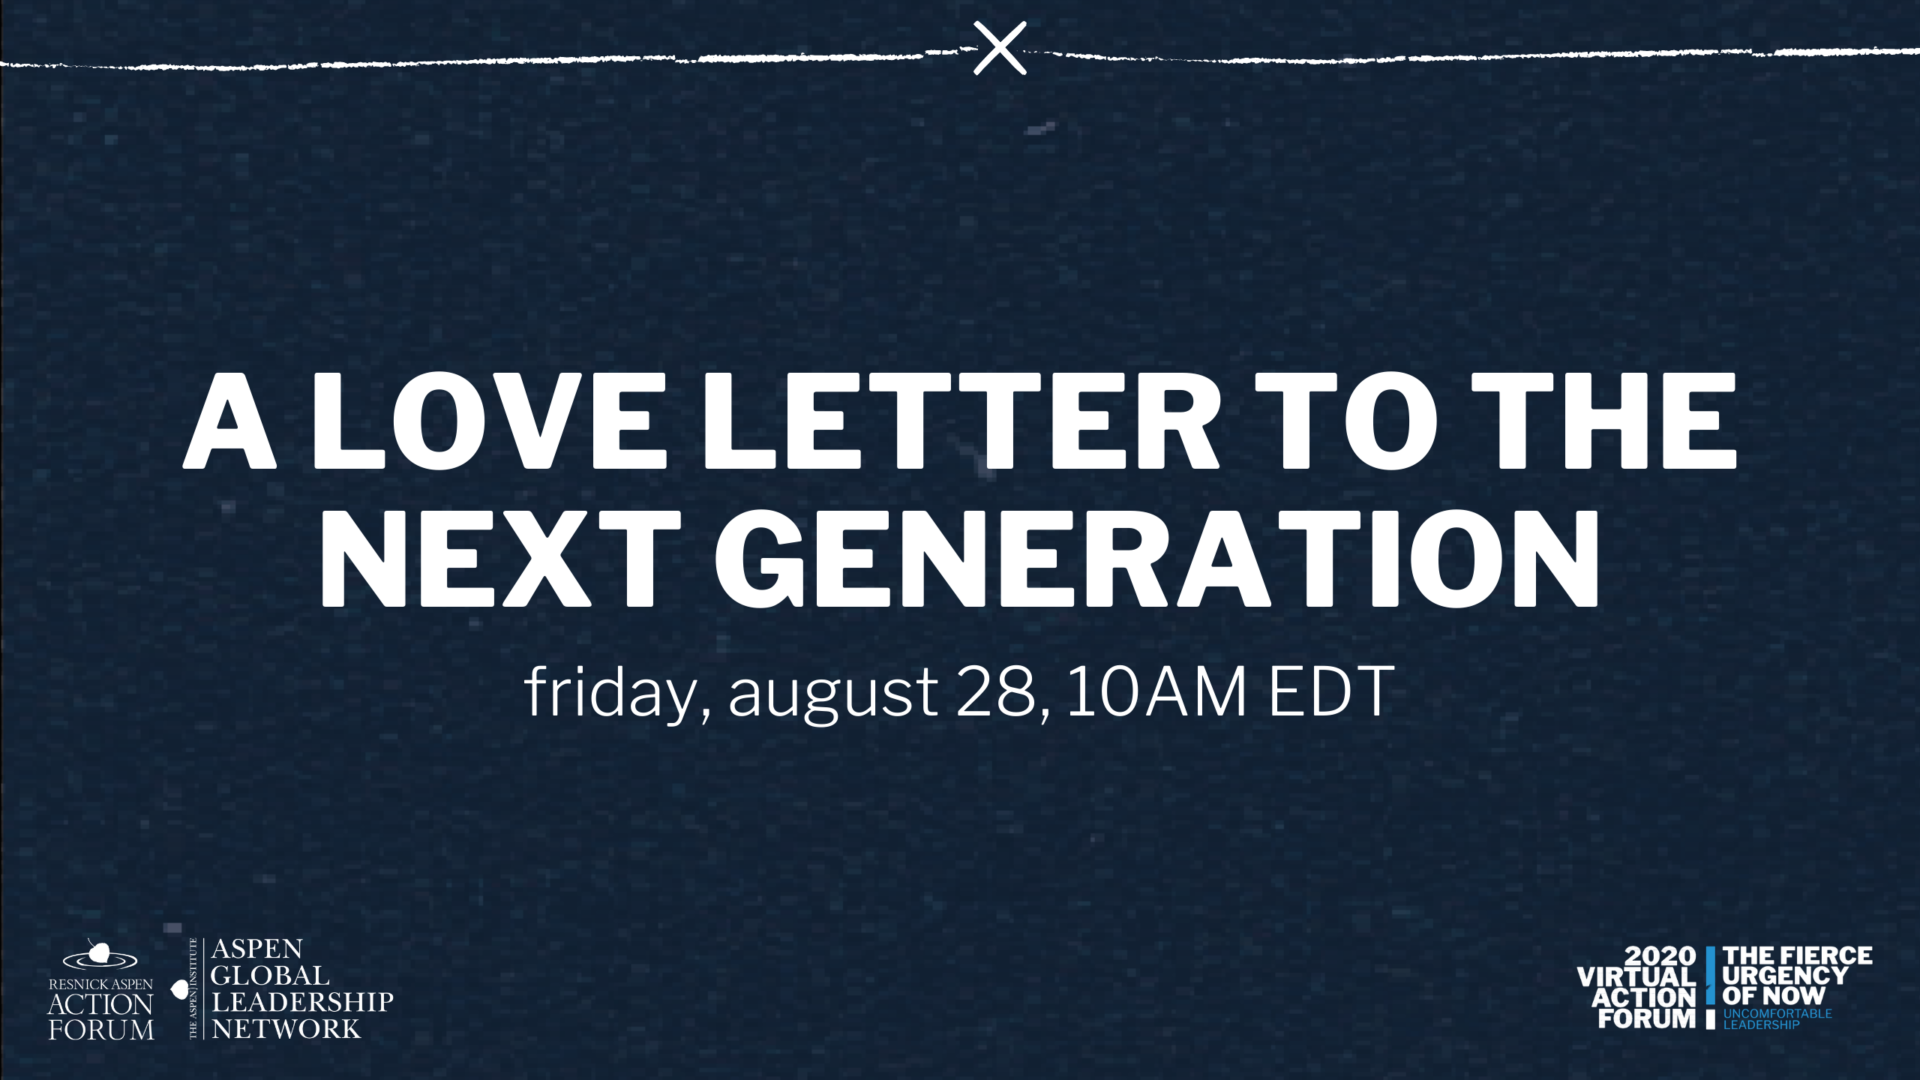 A Love Letter to the Next Generation